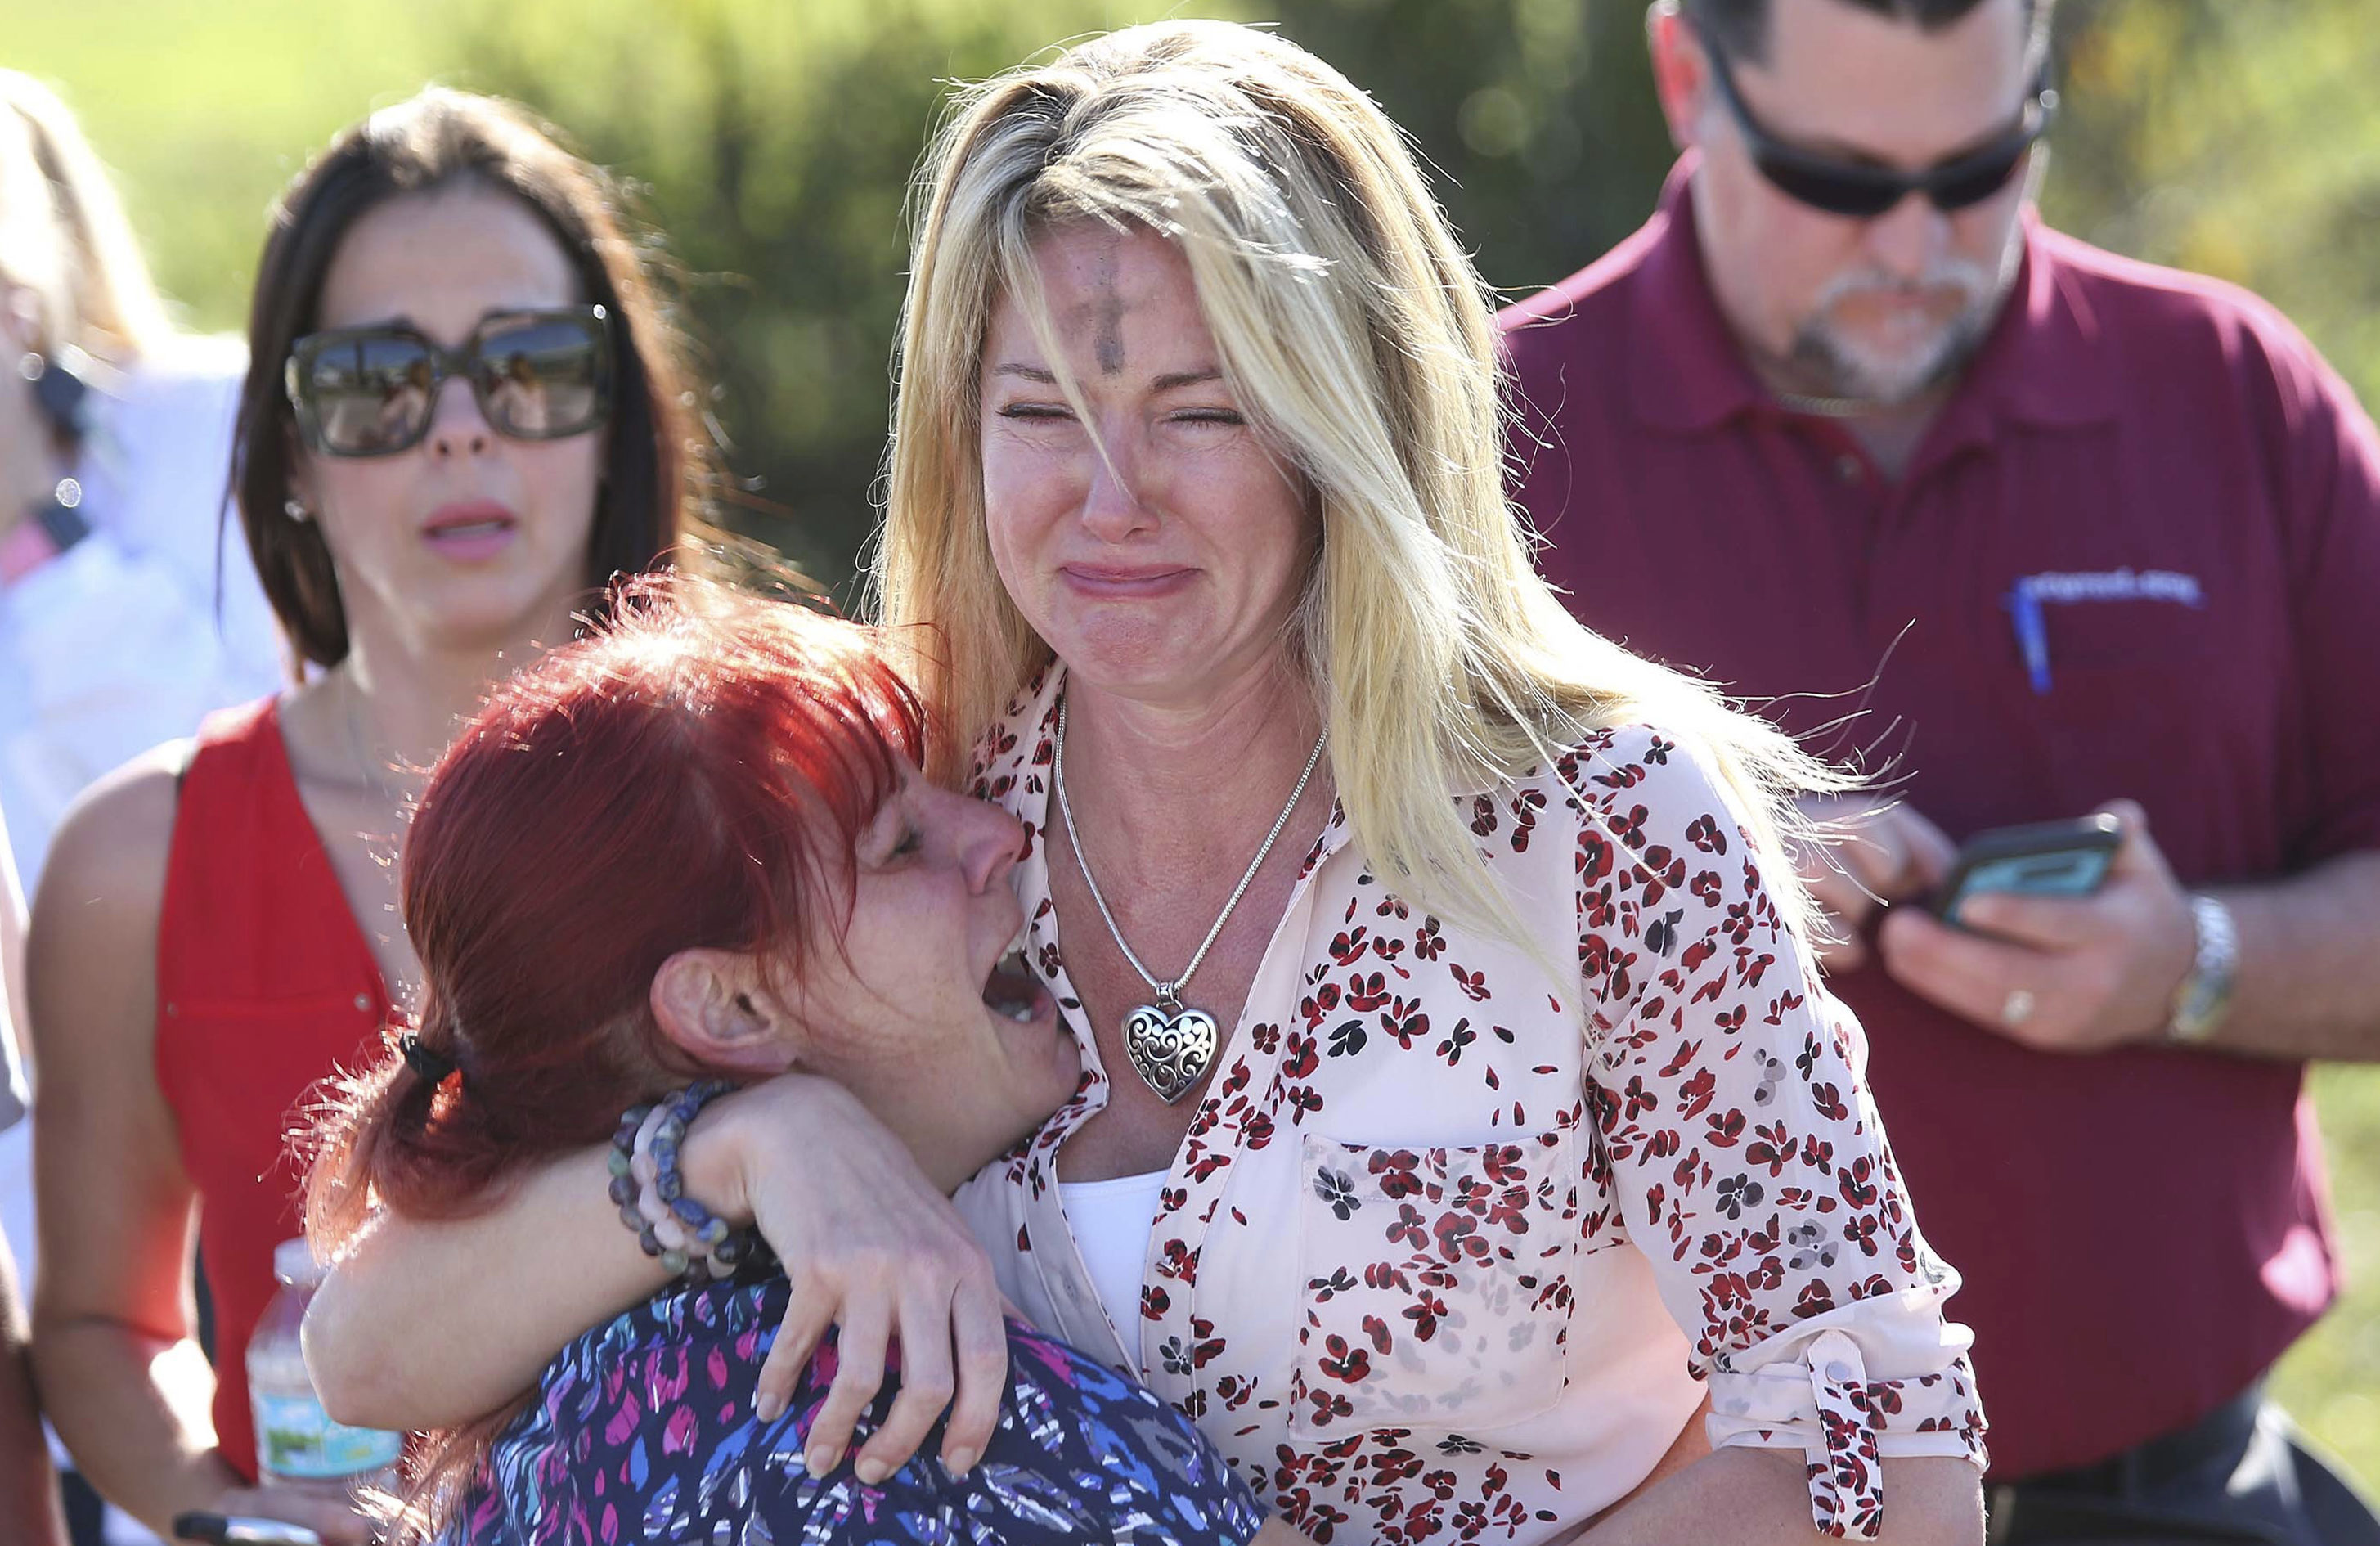 Parents wait for news after a reports of a shooting at Marjory Stoneman Douglas High School in Parkland, Fla., on Wednesday, February 14